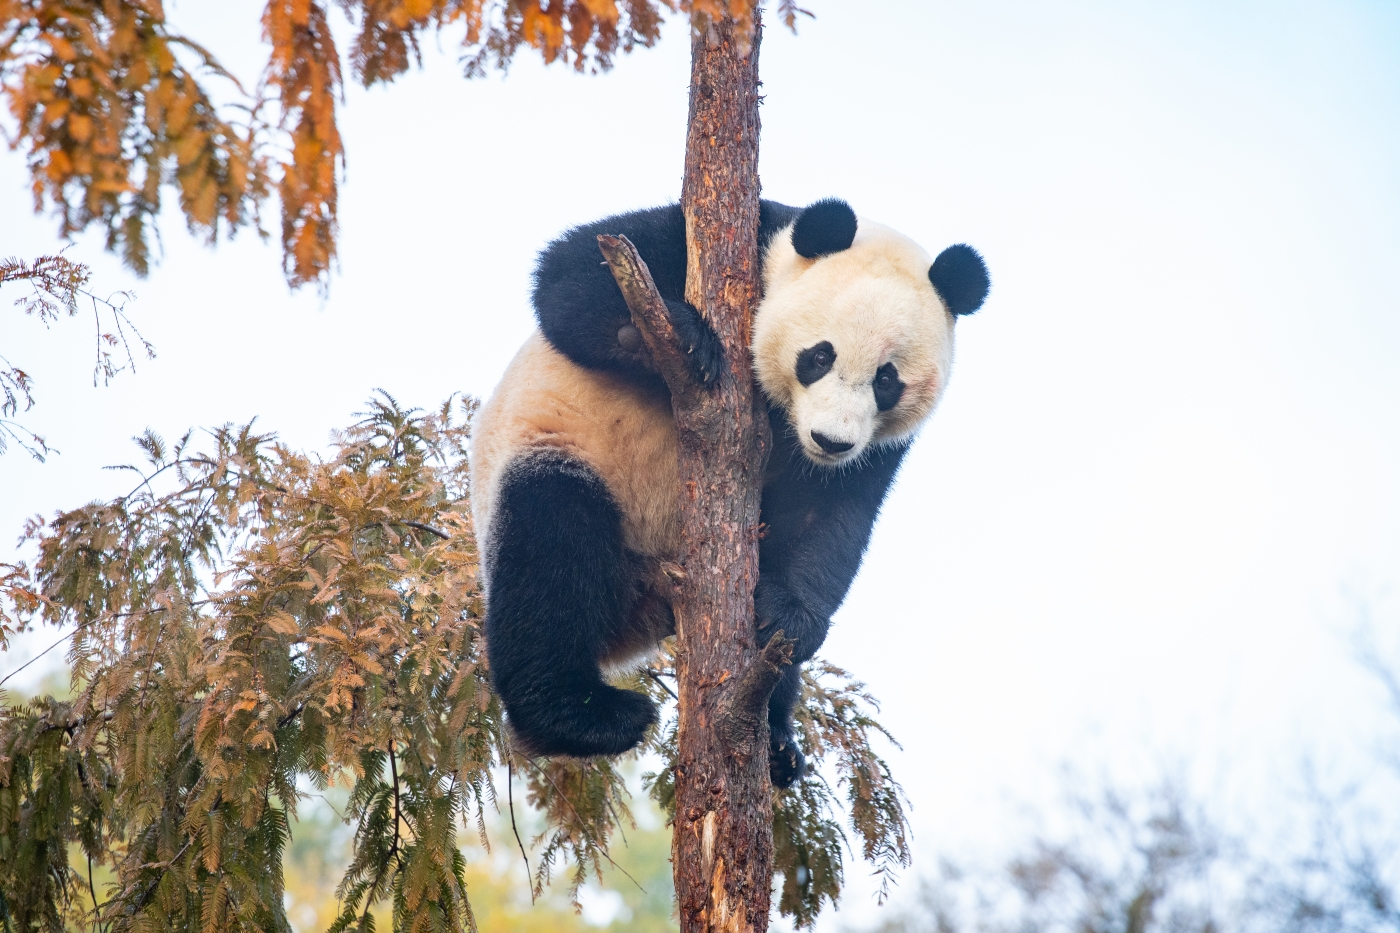 Giant panda Bei Bei climbs a tree on the morning of his last day at the Smithsonian's National Zoo before leaving for China